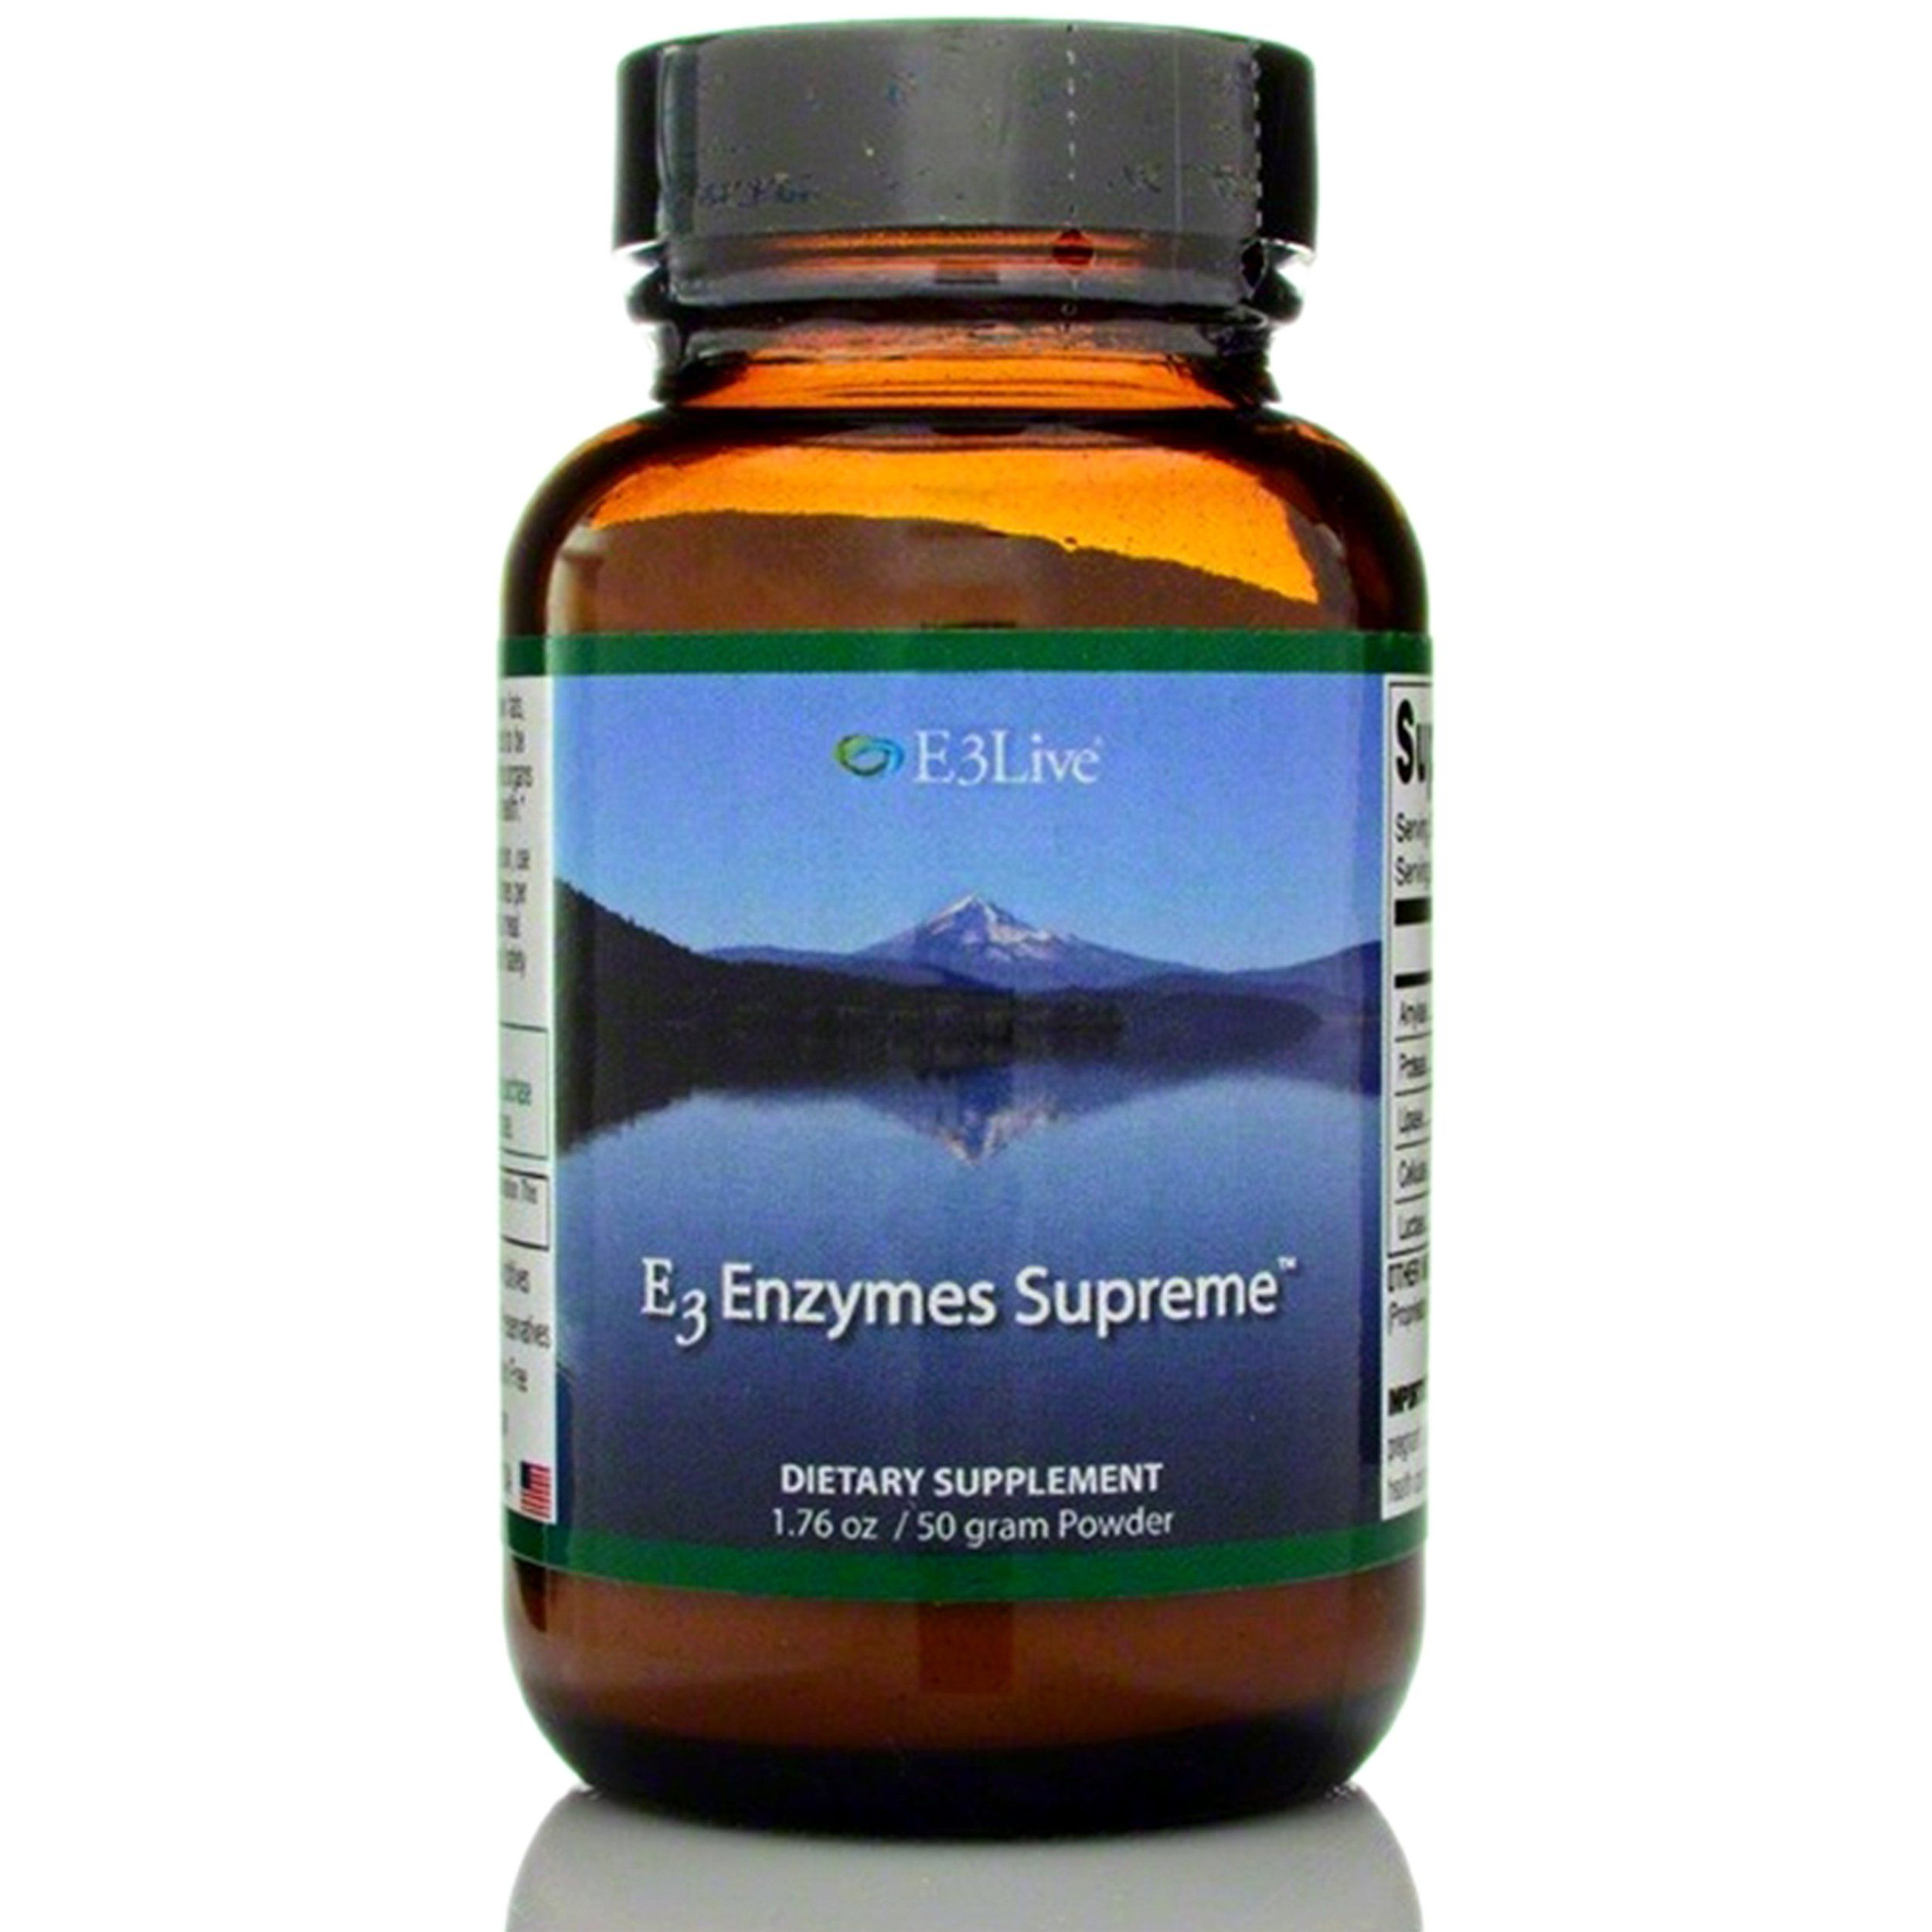 E3 Enzyme Supreme Formula 50g Powder Supports Digestion Cleansing 3 In 1 Formula Digestion Aid Enzymes Digestion